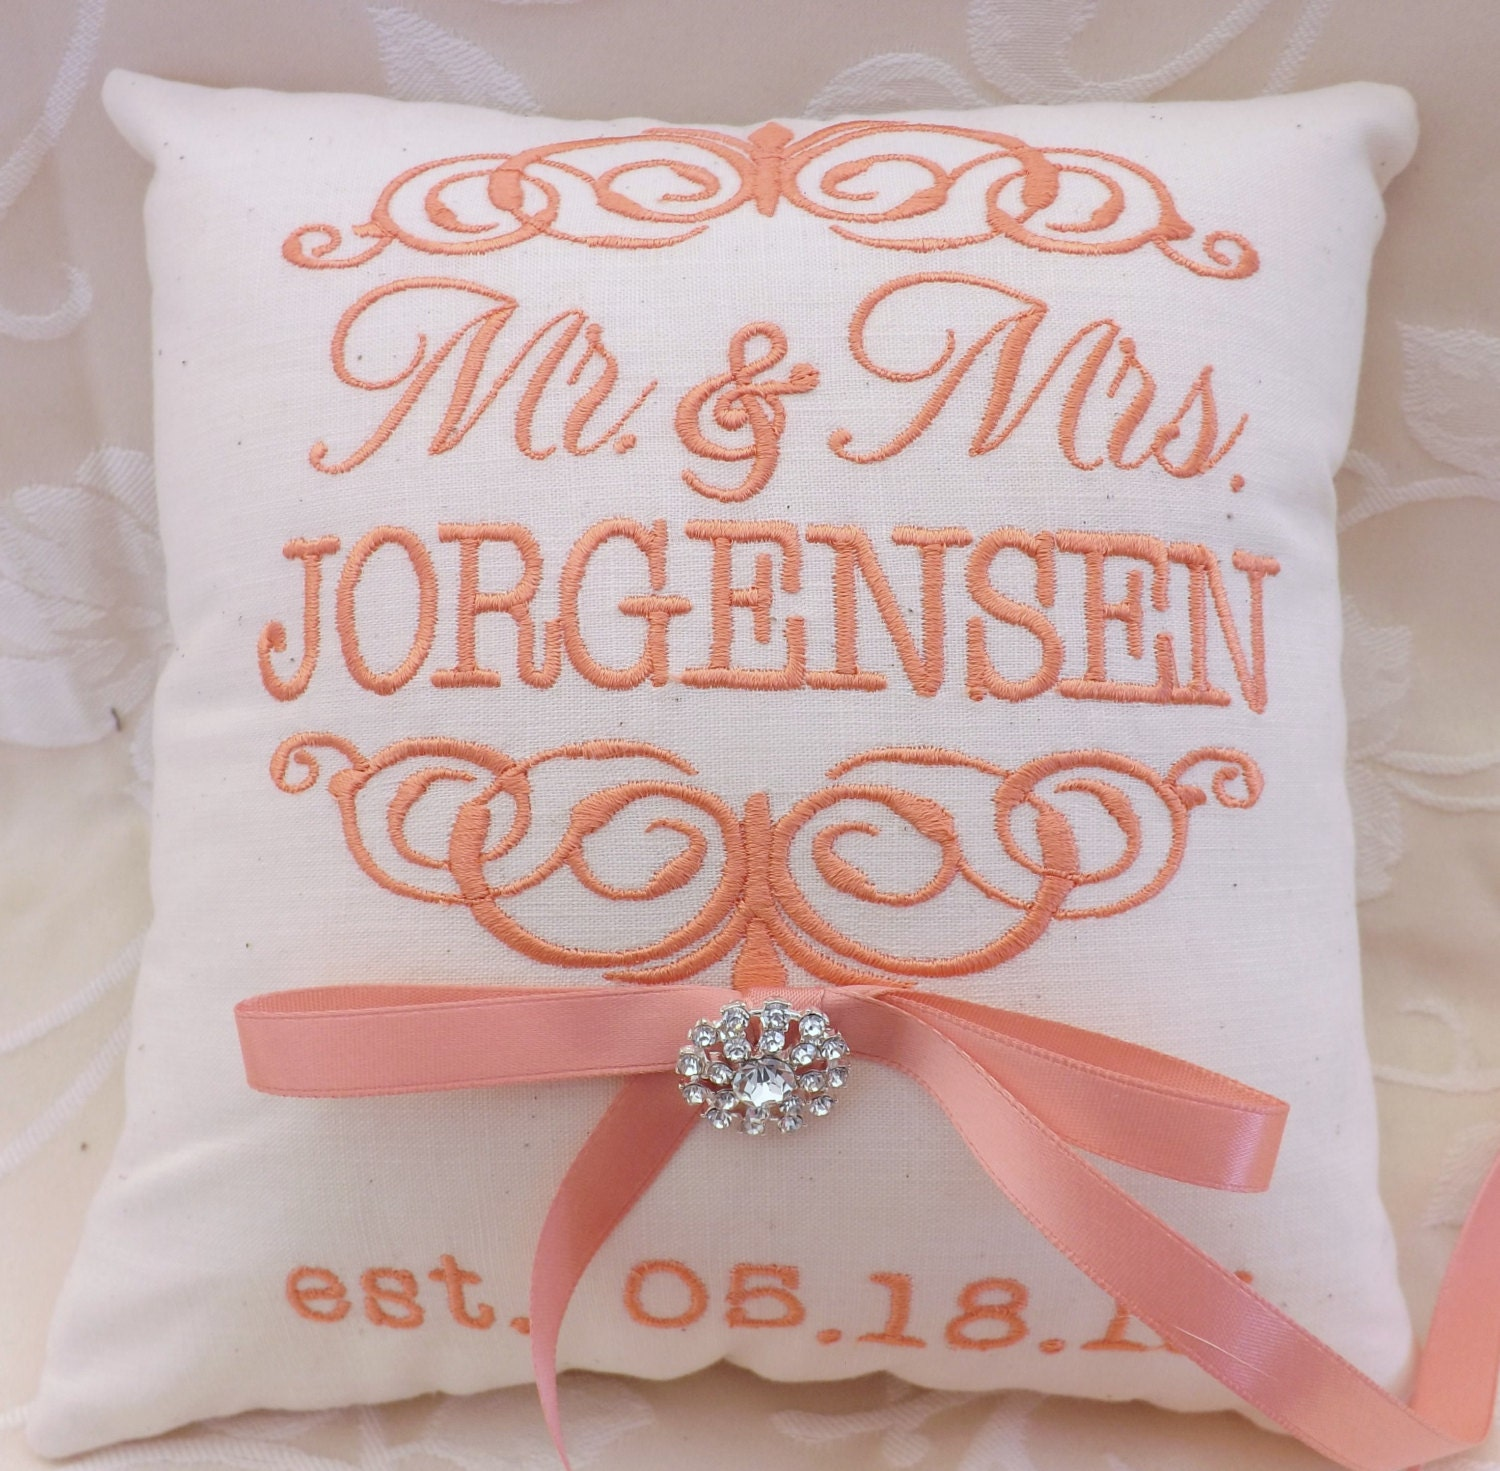 Monogram Wedding Ring Bearer Pillow: Ring Bearer PillowMr. & Mrs. Ring Bearer Pillow. Ring Pillow